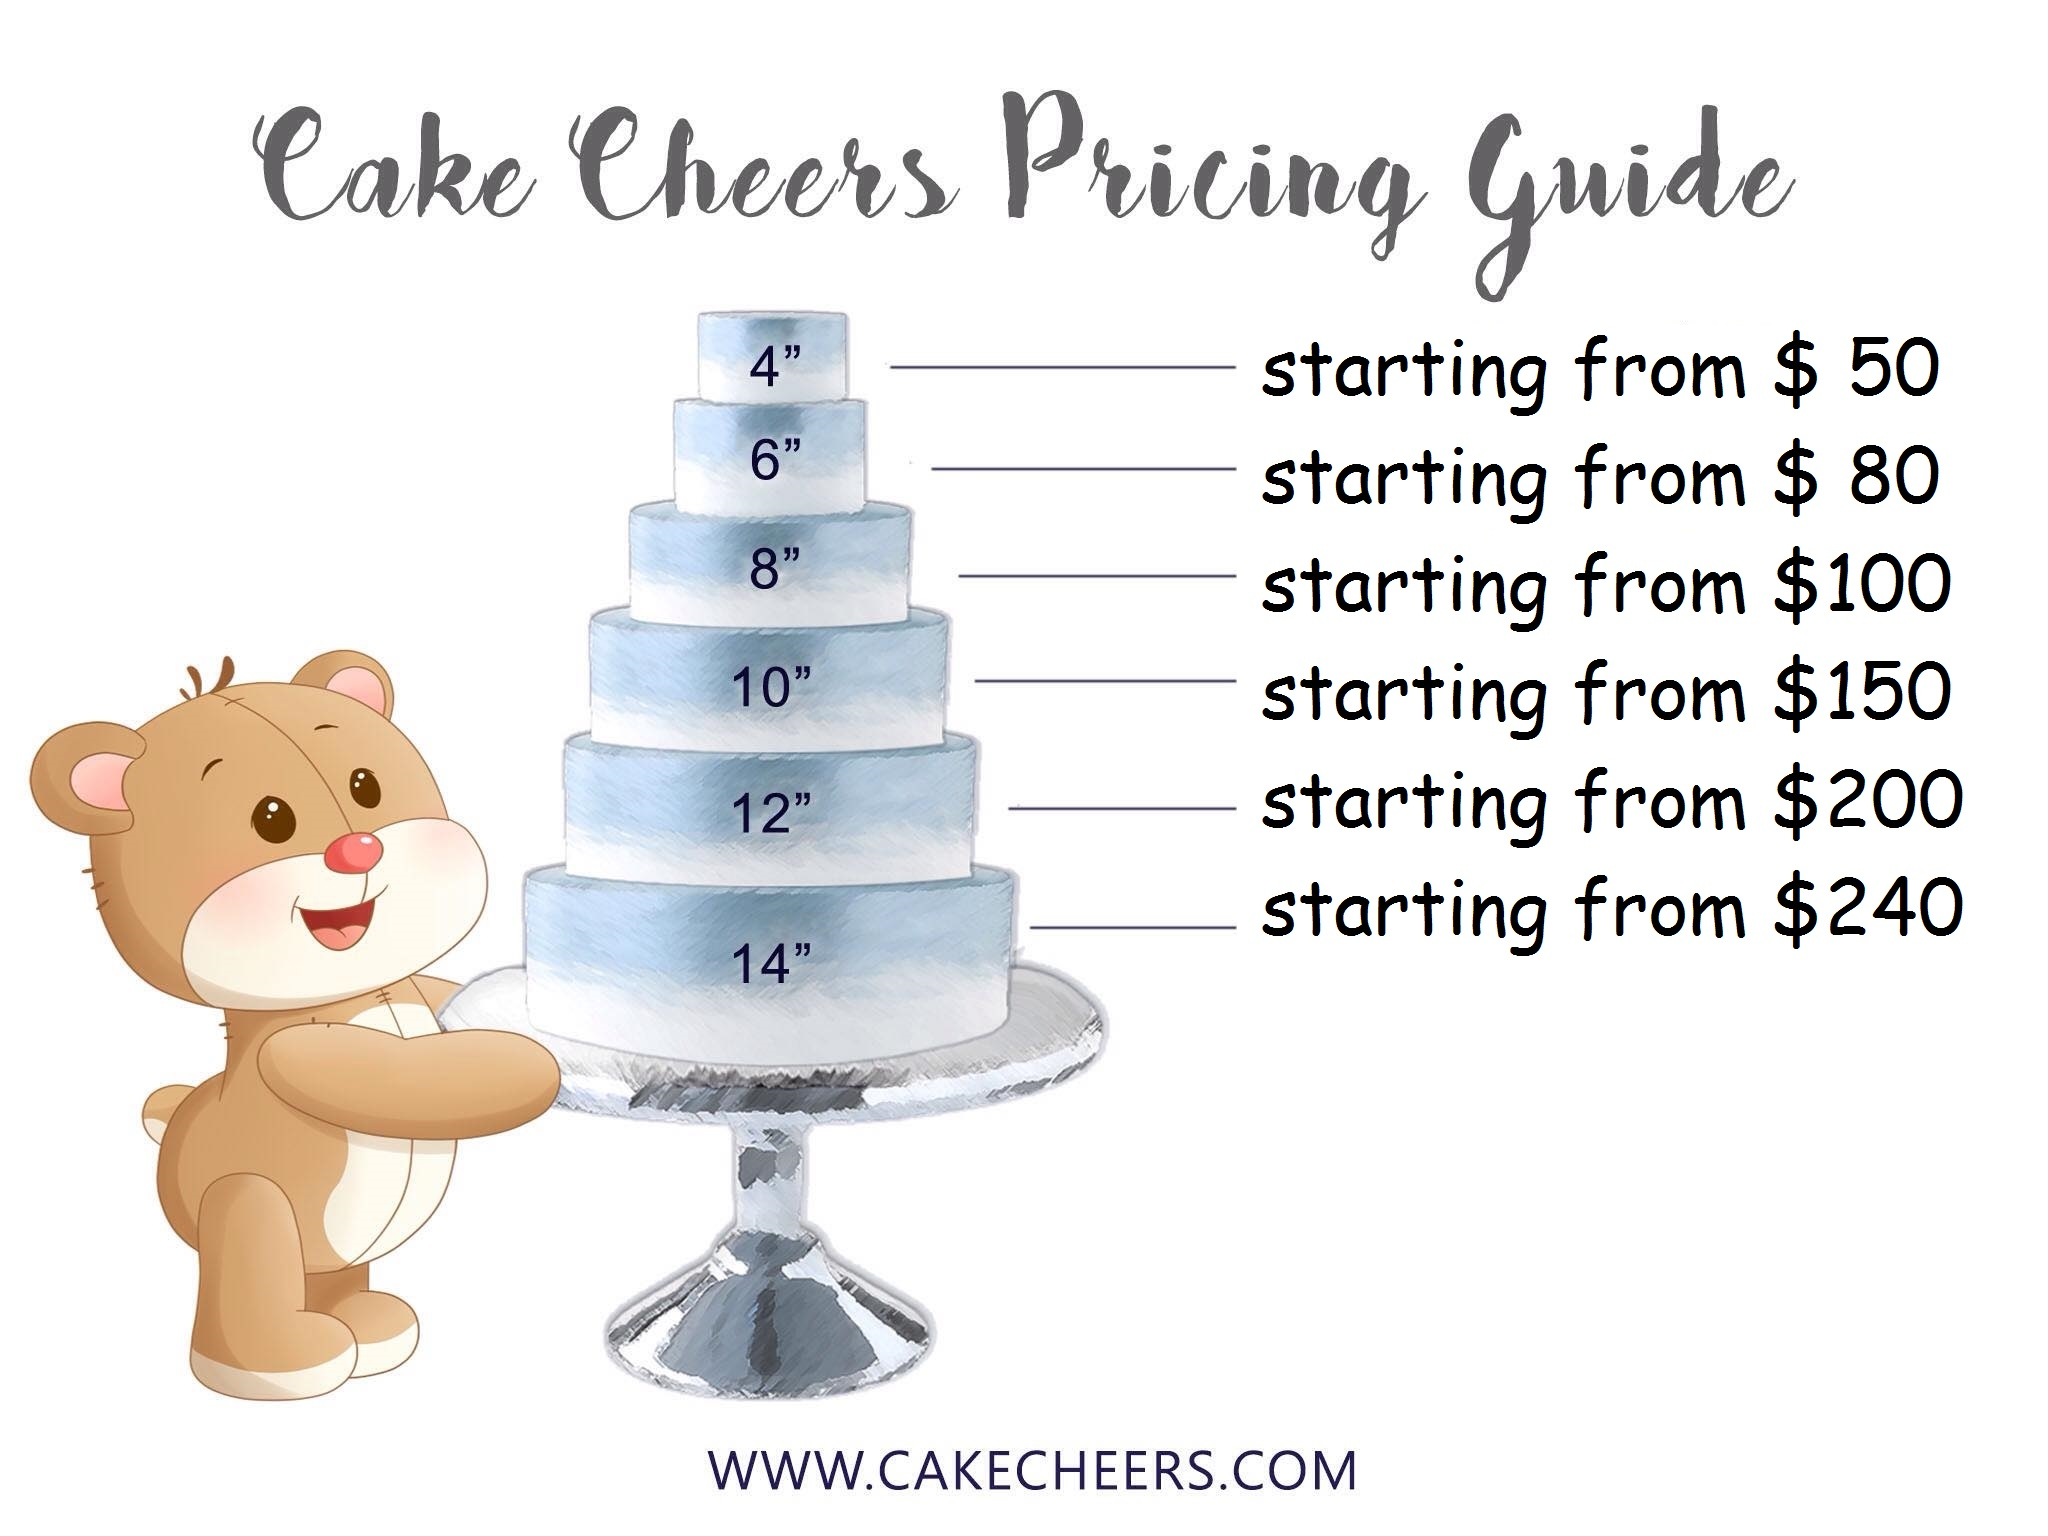 Pricing Guide - Cake Cheers